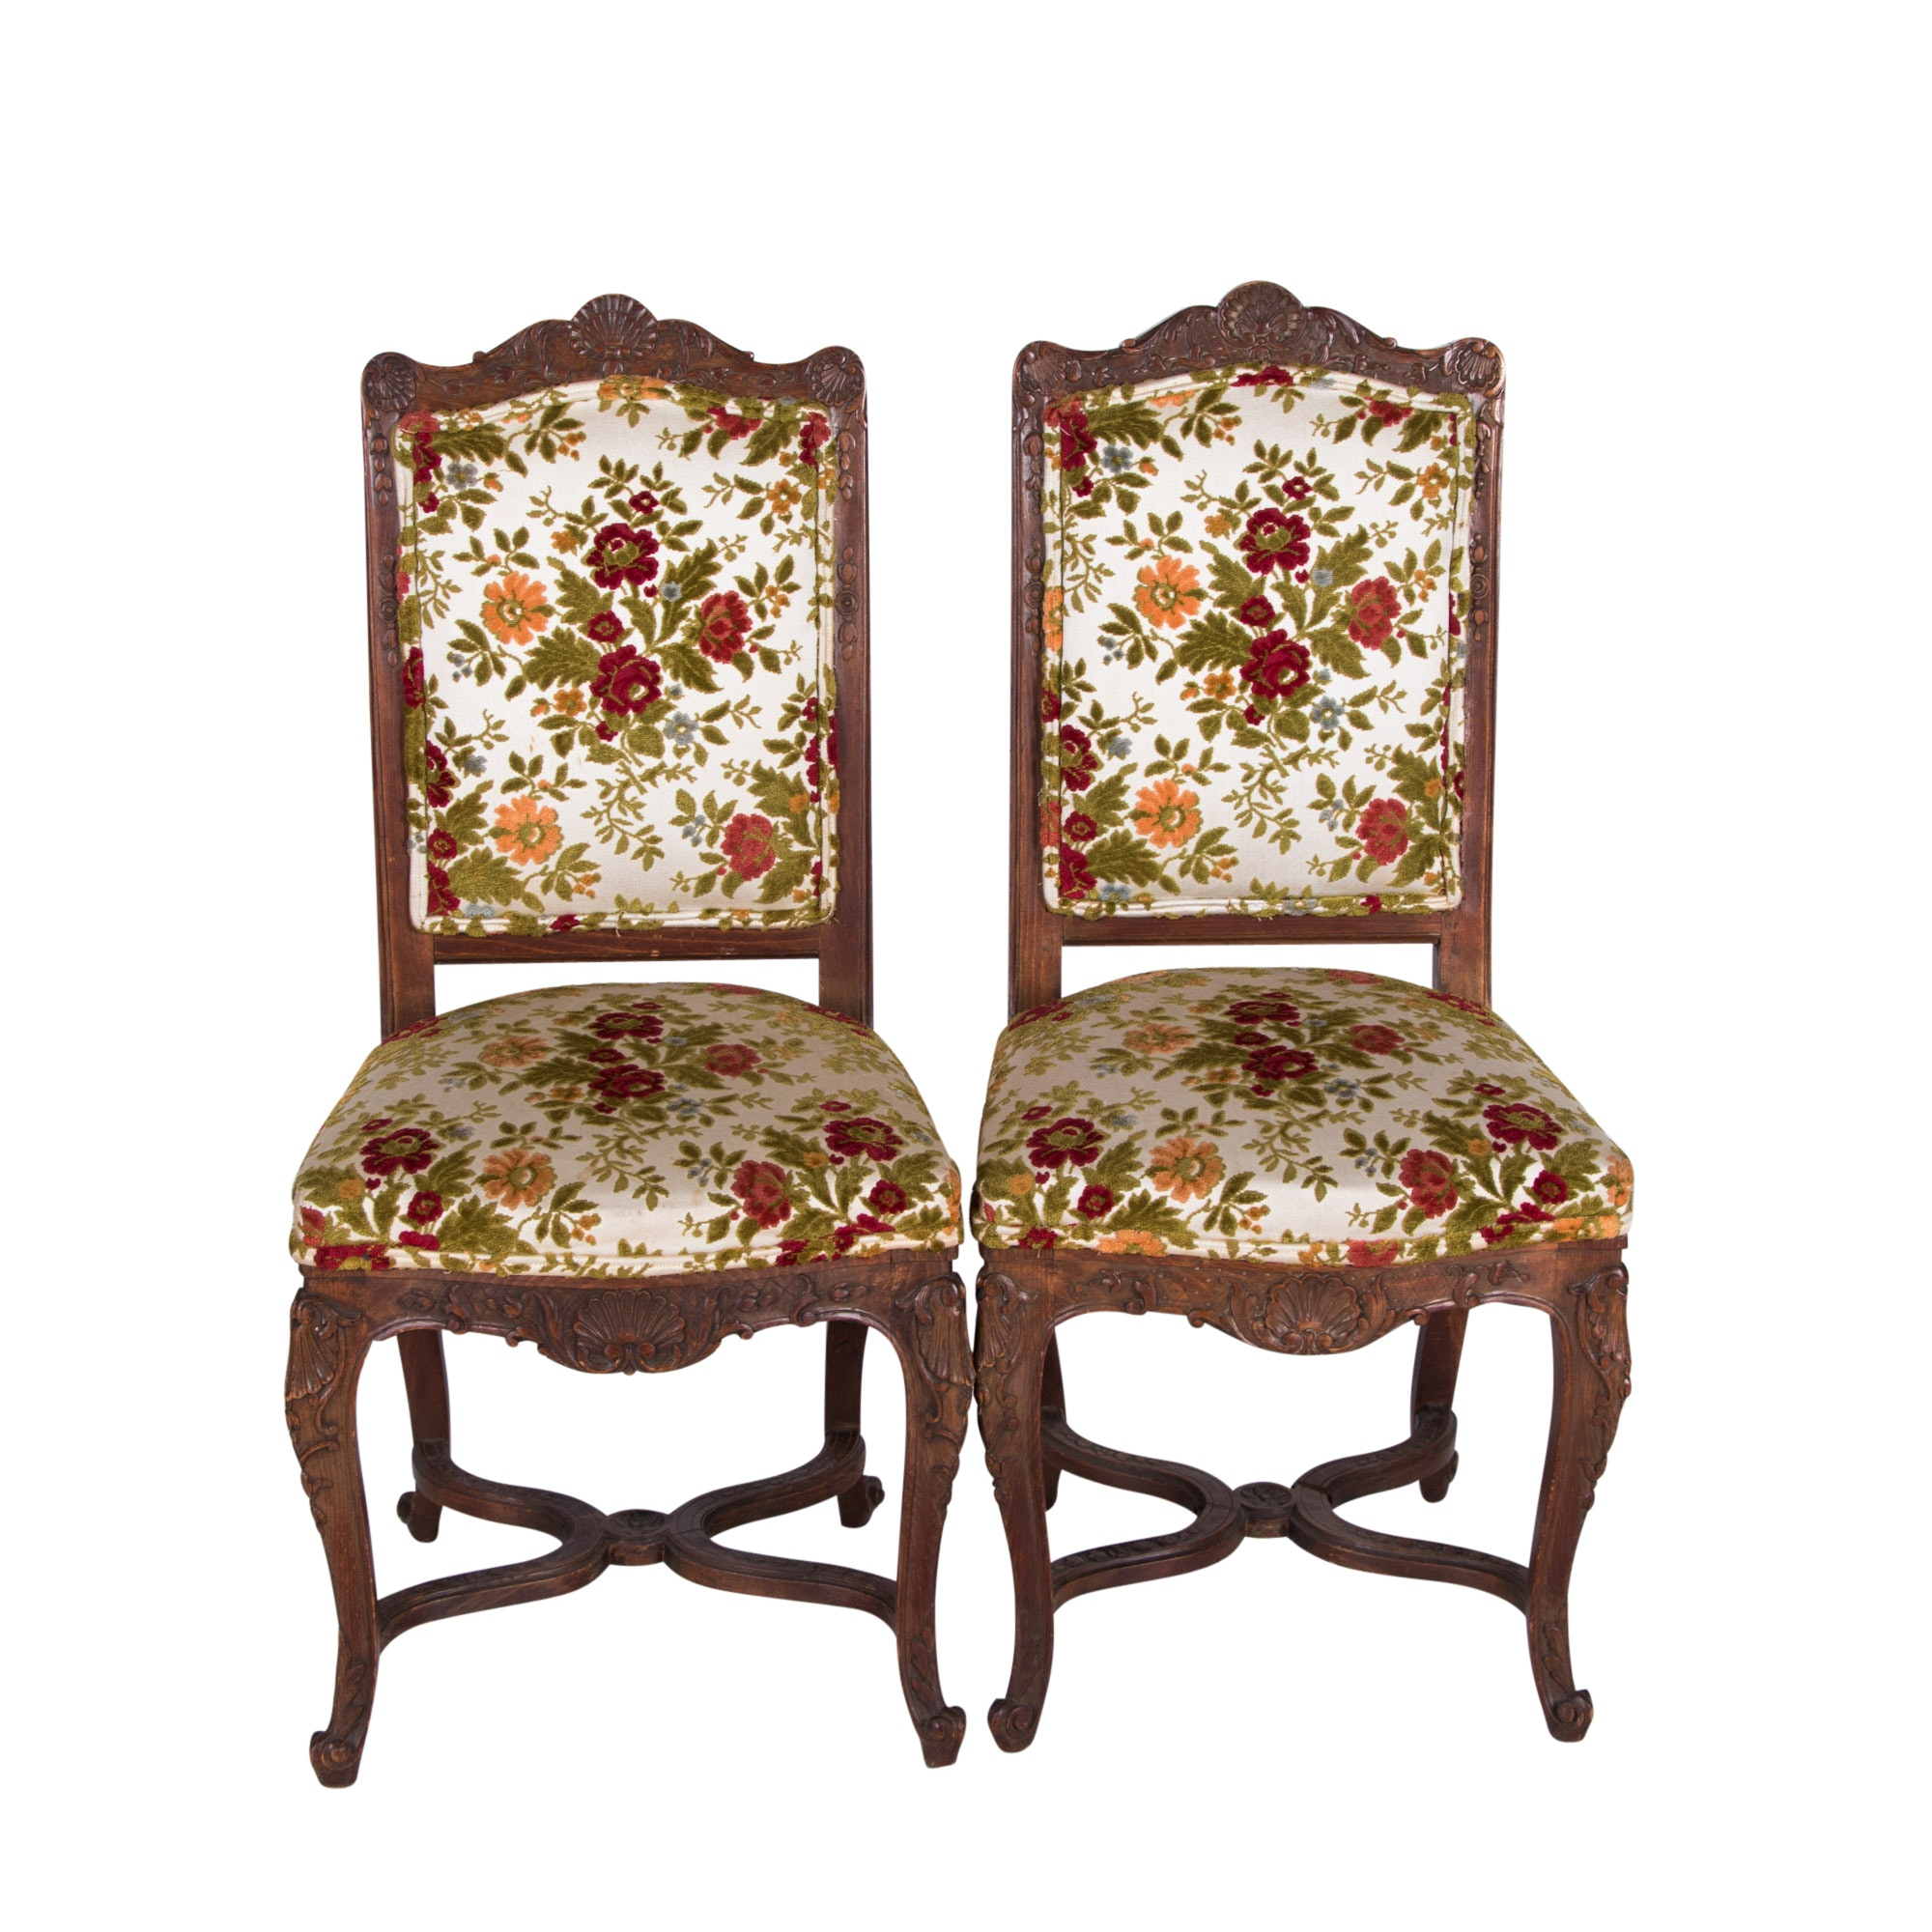 Pair of Regence Style Carved Beech Side Chairs, Circa 1900